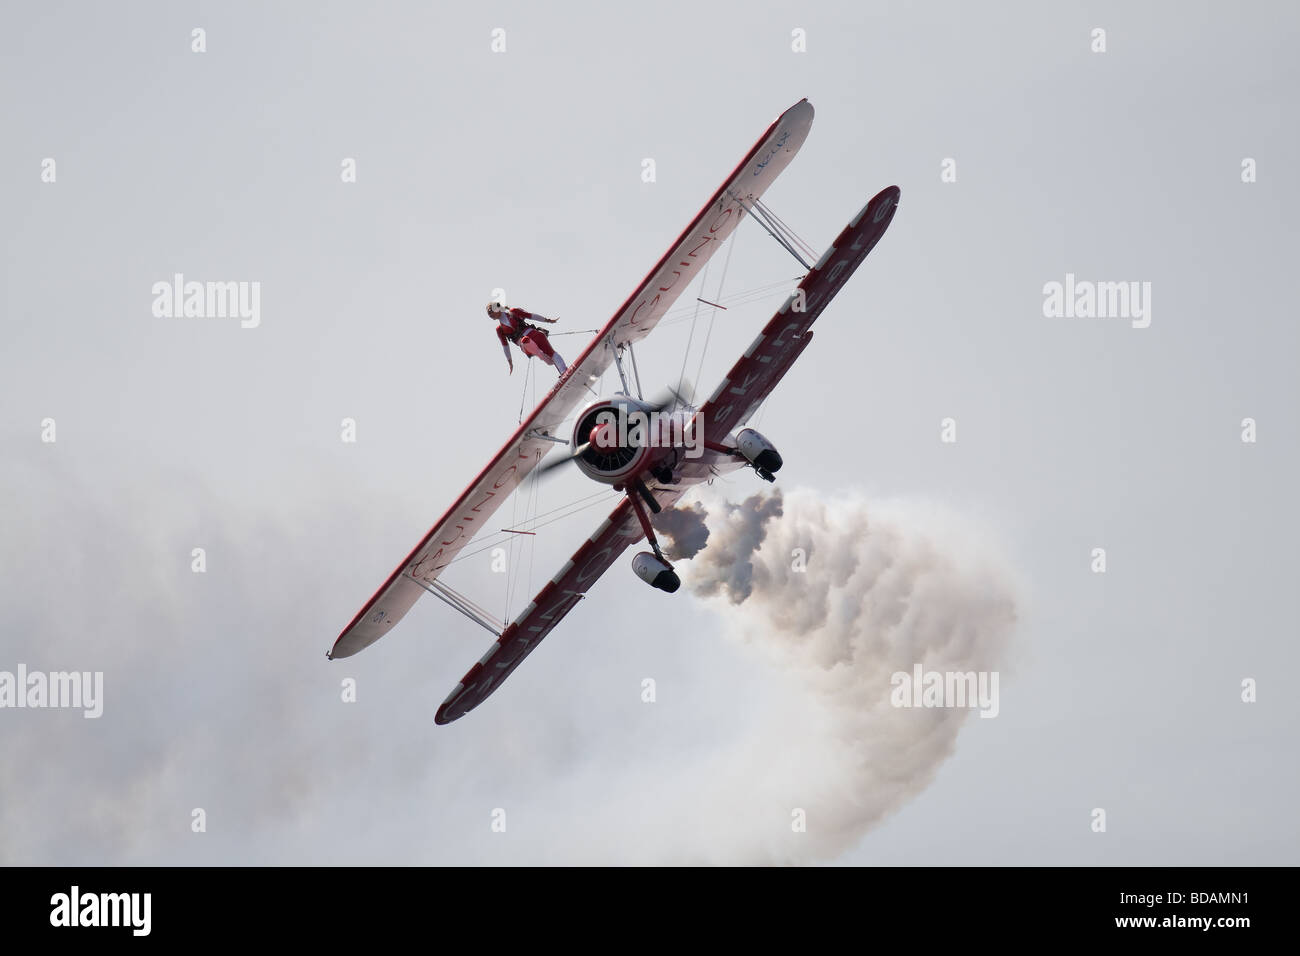 Guinot Wing Walker at Blackpool Airshow 2009 - Stock Image